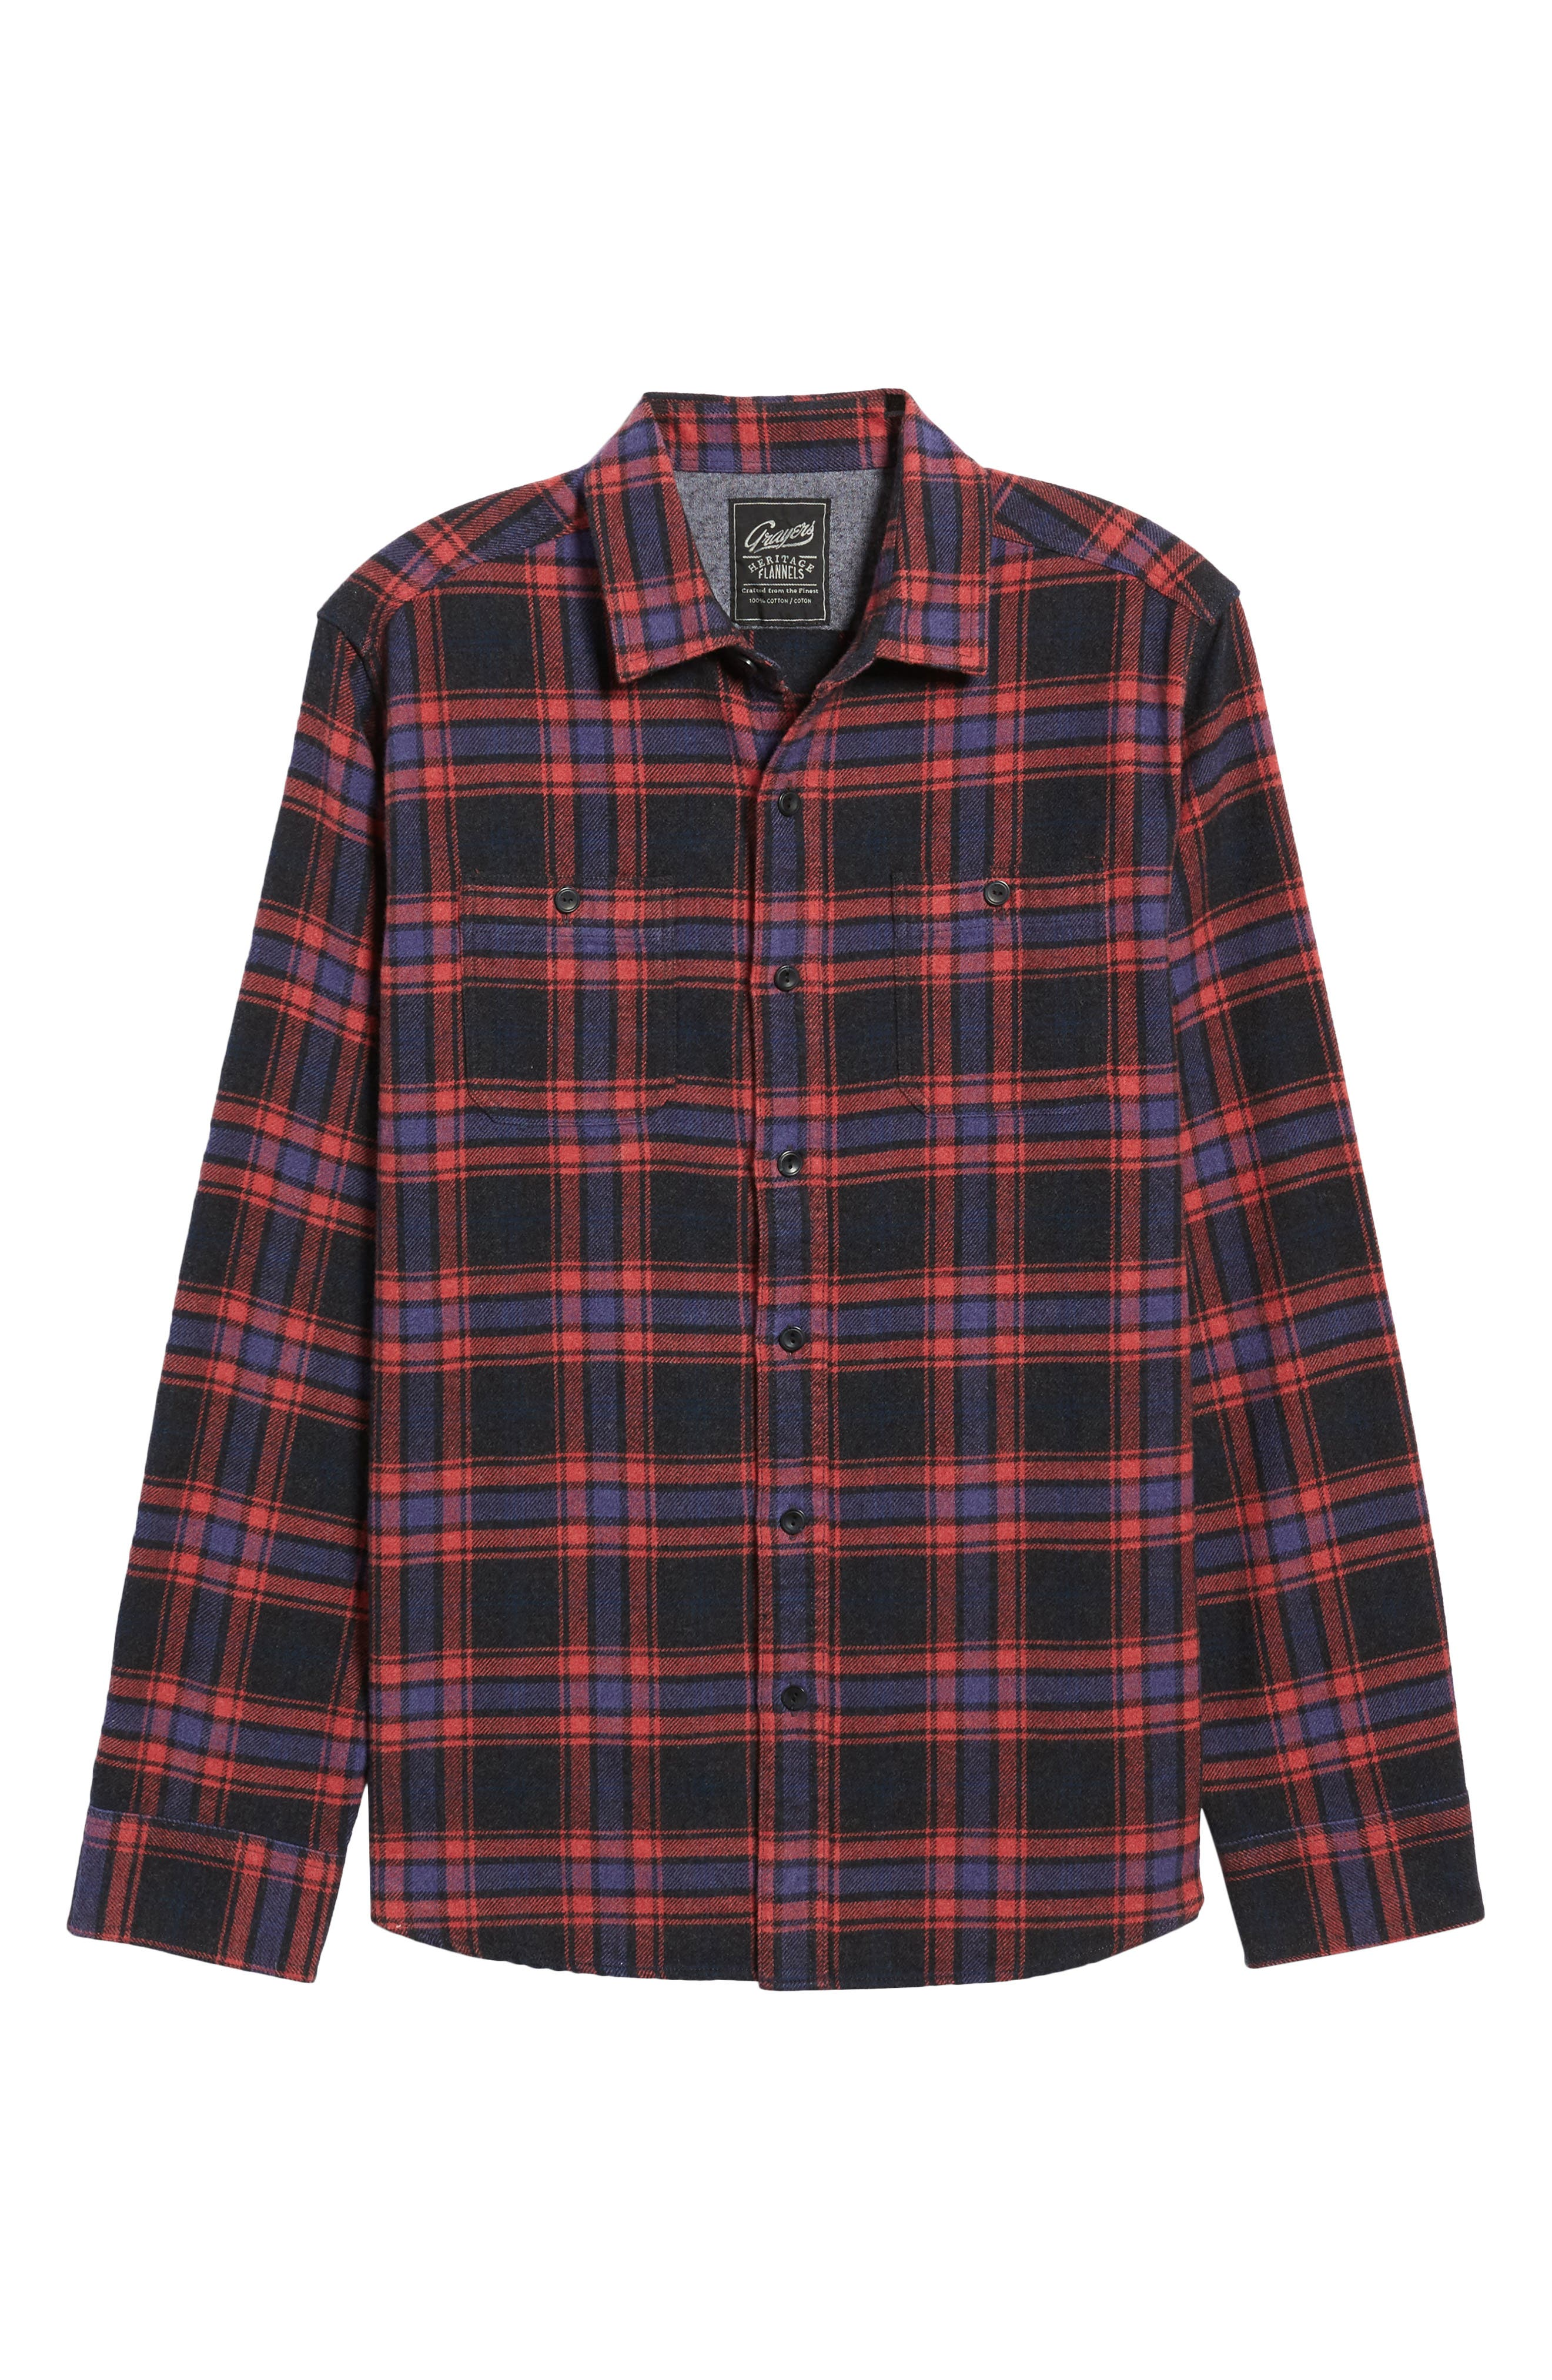 Chaucer Heritage Flannel Shirt,                             Alternate thumbnail 6, color,                             Charcoal Red